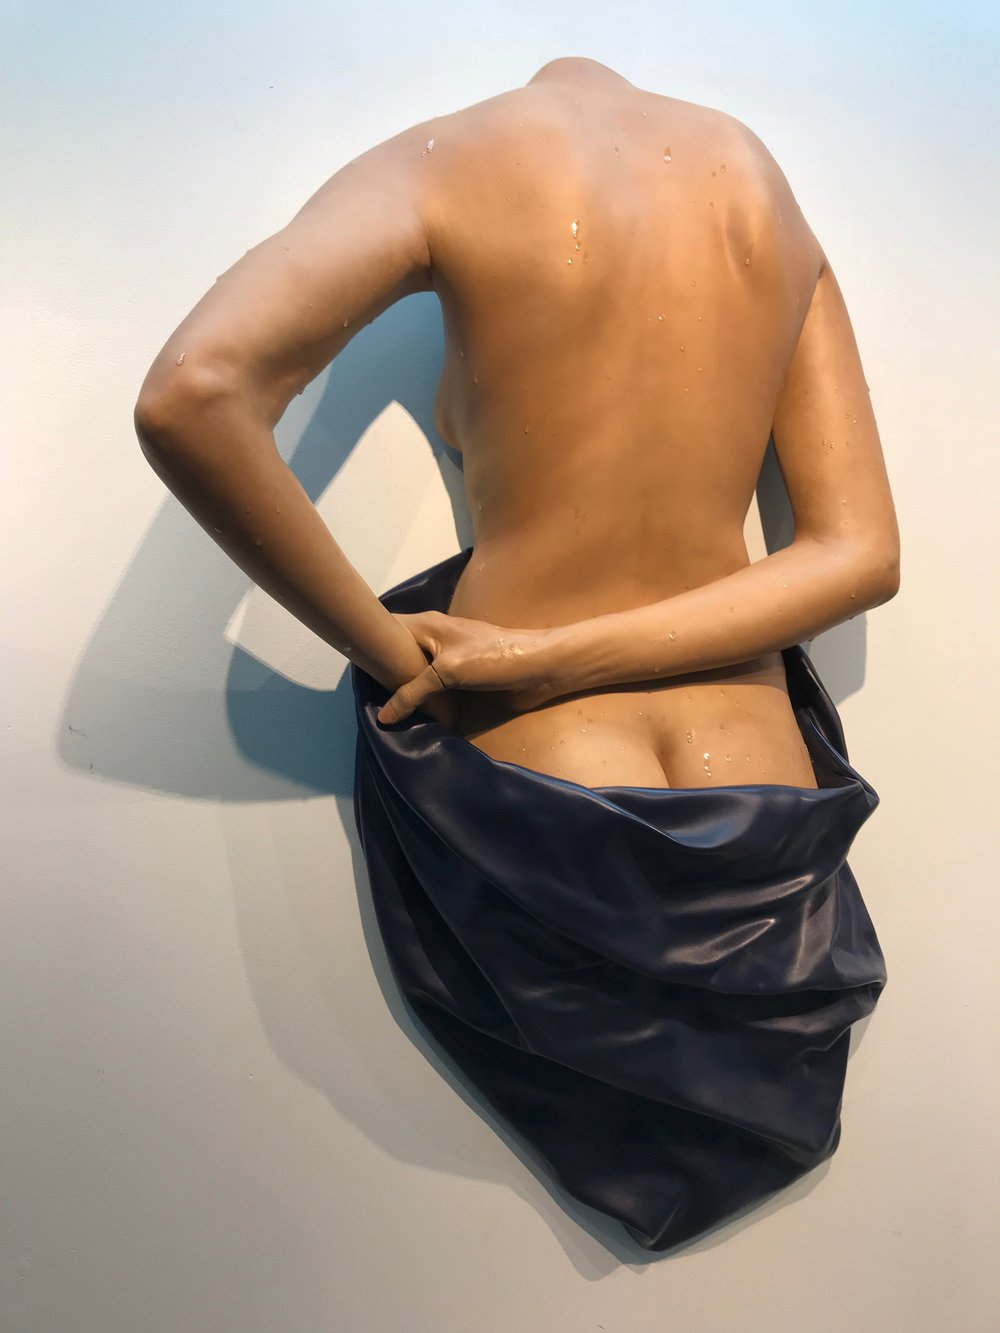 "Blue Towel on Back, 2018, Polychromed Resin, 38"" x 28"" x 10"""